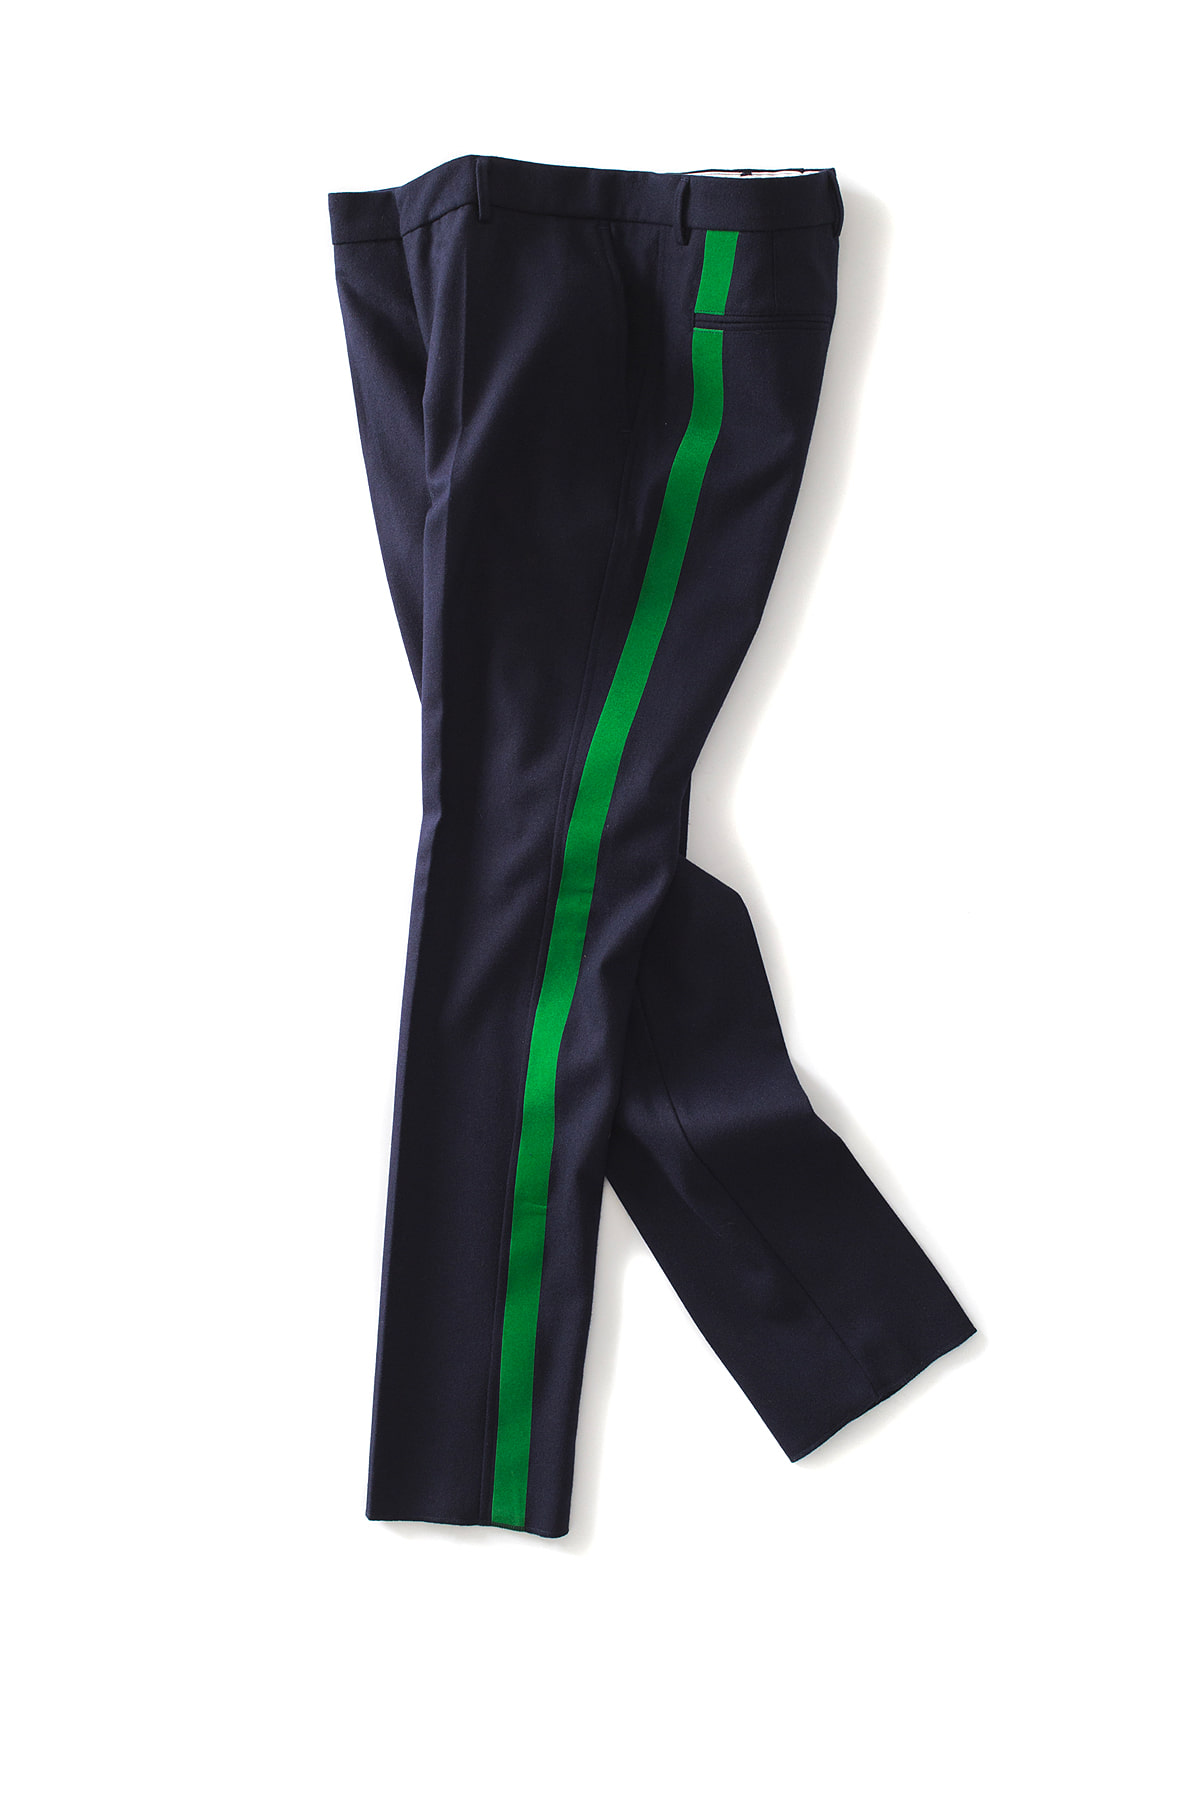 THE EDITOR : Line Wool Trouser (Navy x Green Line)